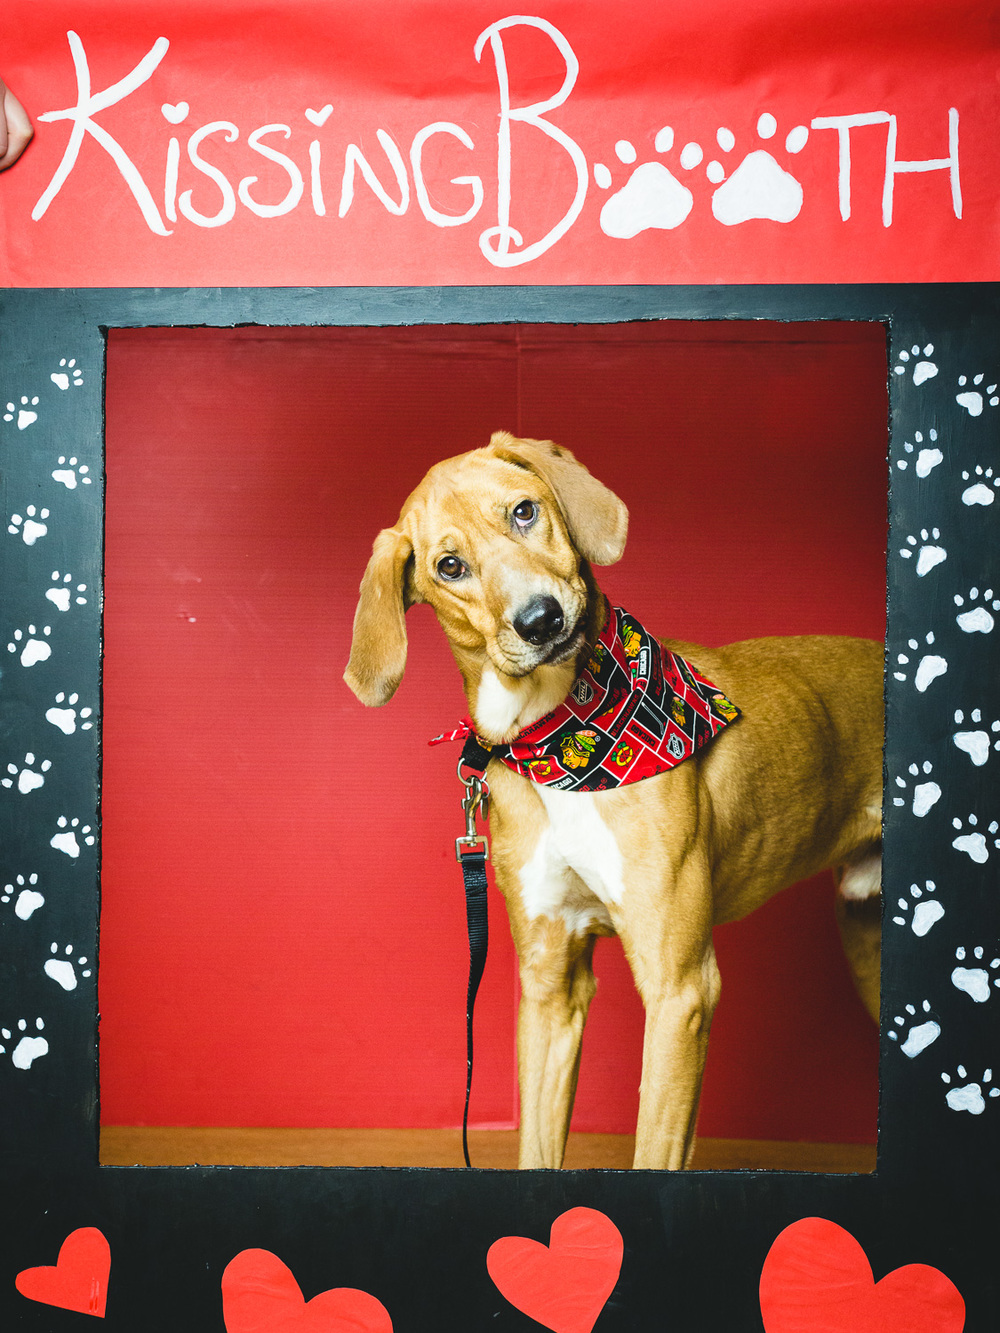 Dog Kissing Booth In Chicago